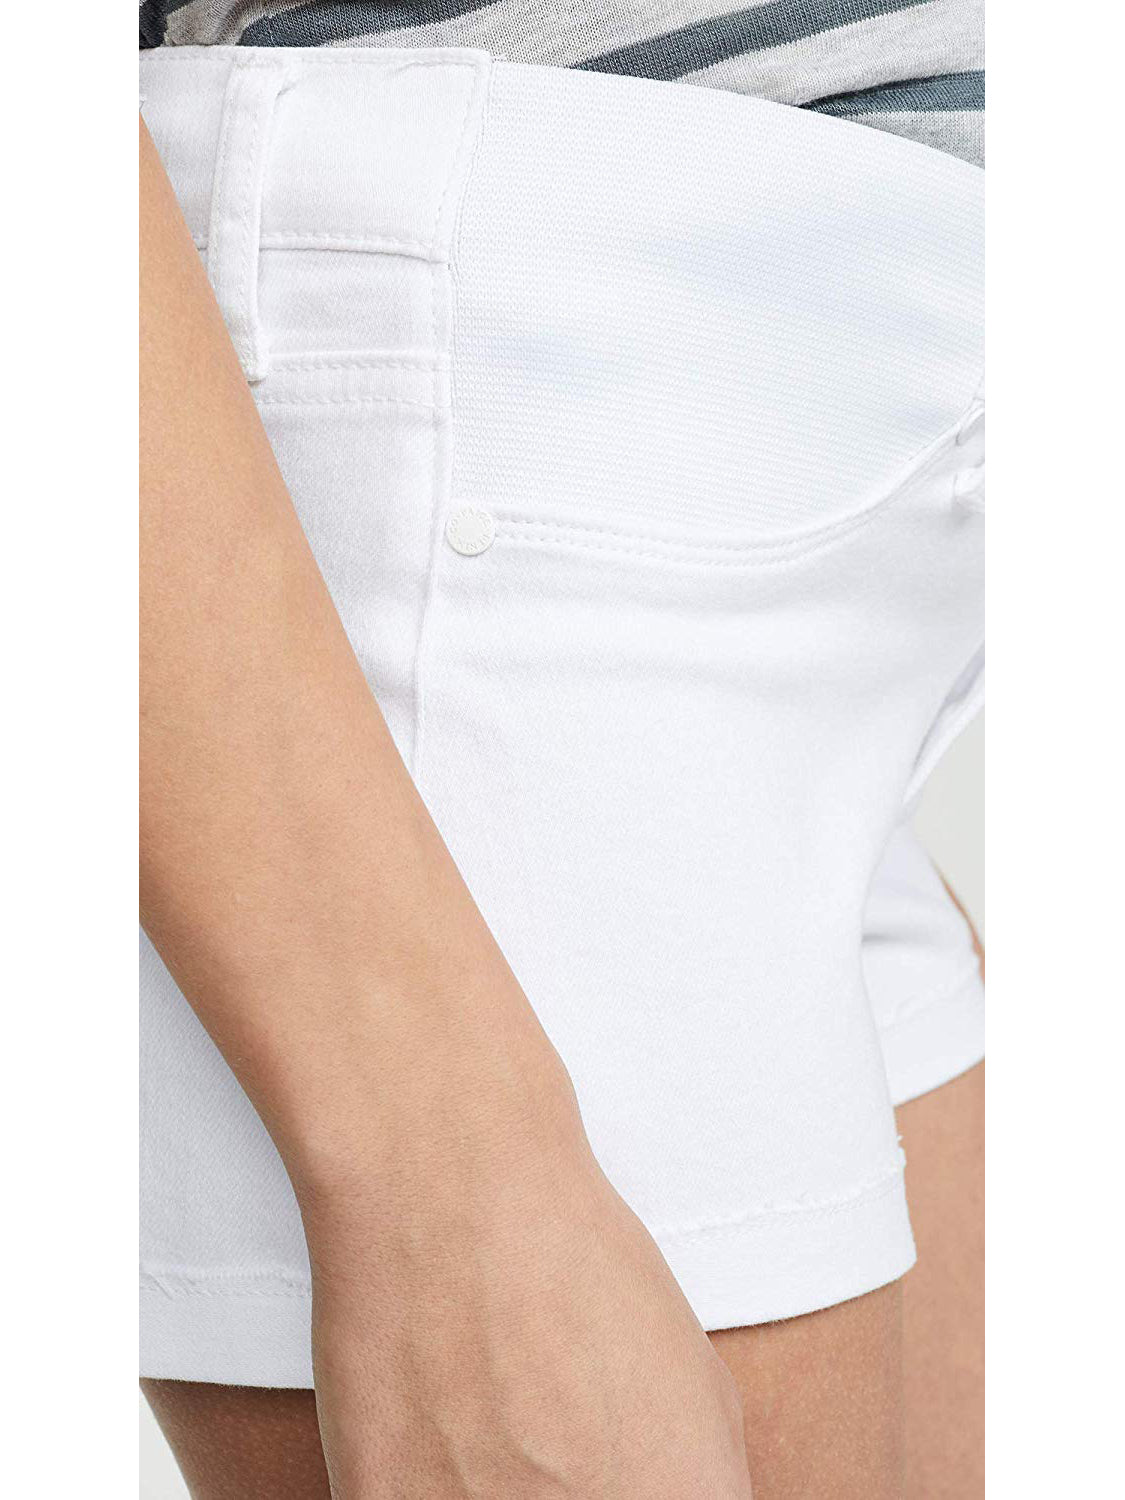 Paige Jimmy Jimmy Maternity Jean Shorts - Crisp White | TILDEN